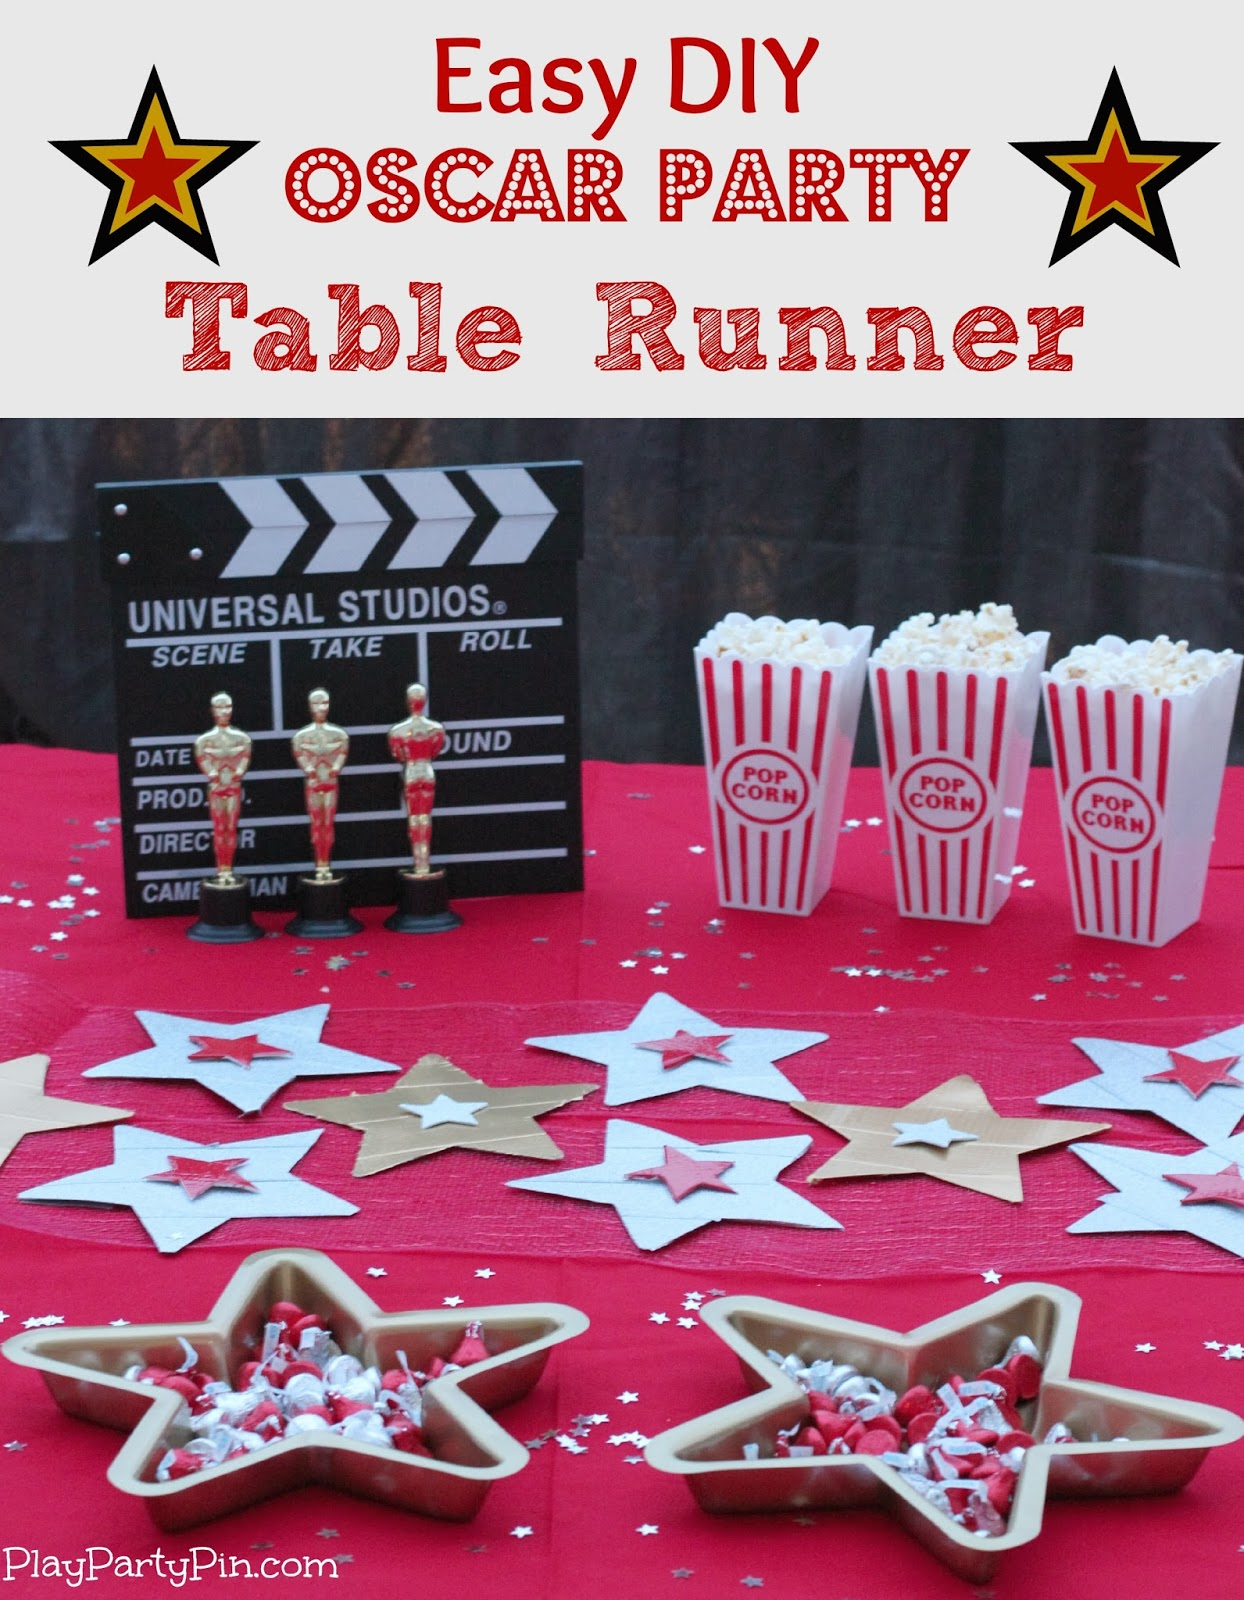 Easy DIY Oscar Party Table Runner using #DuckCraftTape #sponsored